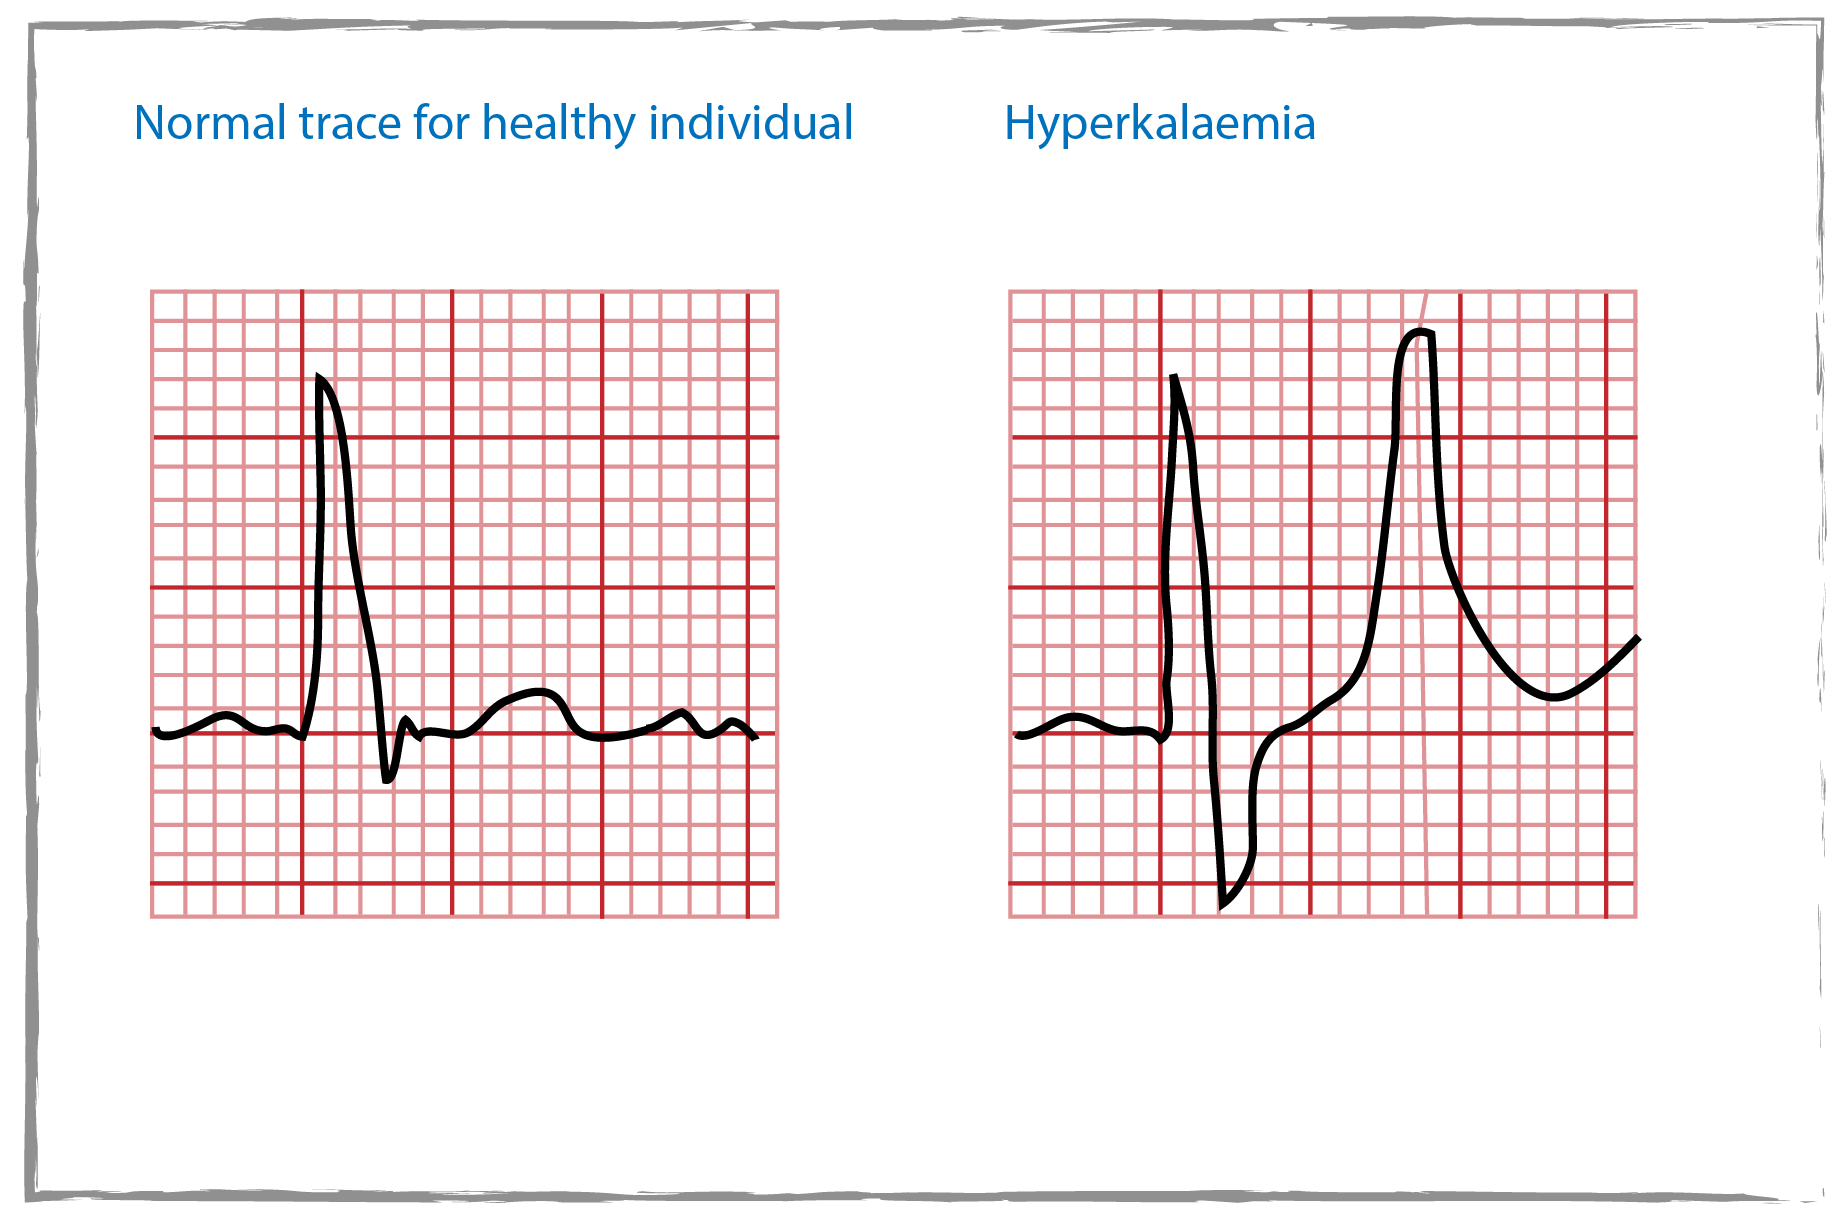 Hyperkalaemia chart showing a normal trace on the left with regular cardiac rhythm and Hyperkalaemia on the right with an abnormal rhythm.